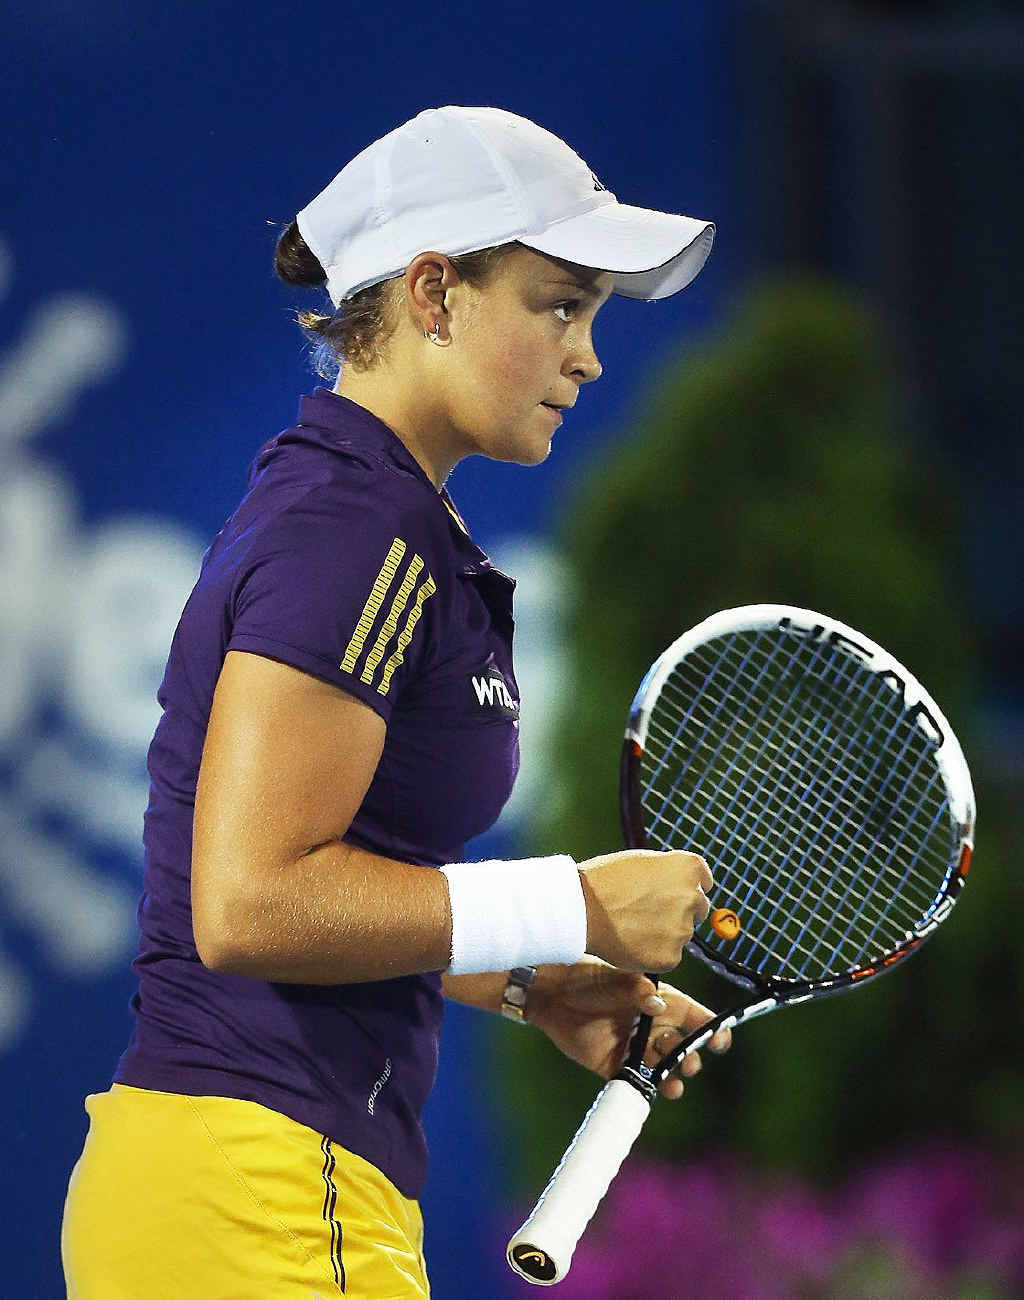 Ipswich's Ashleigh Barty will face world No.15 Dominika Cibulkova of Slovakia in her opening match at the Australian Open in Melbourne today.